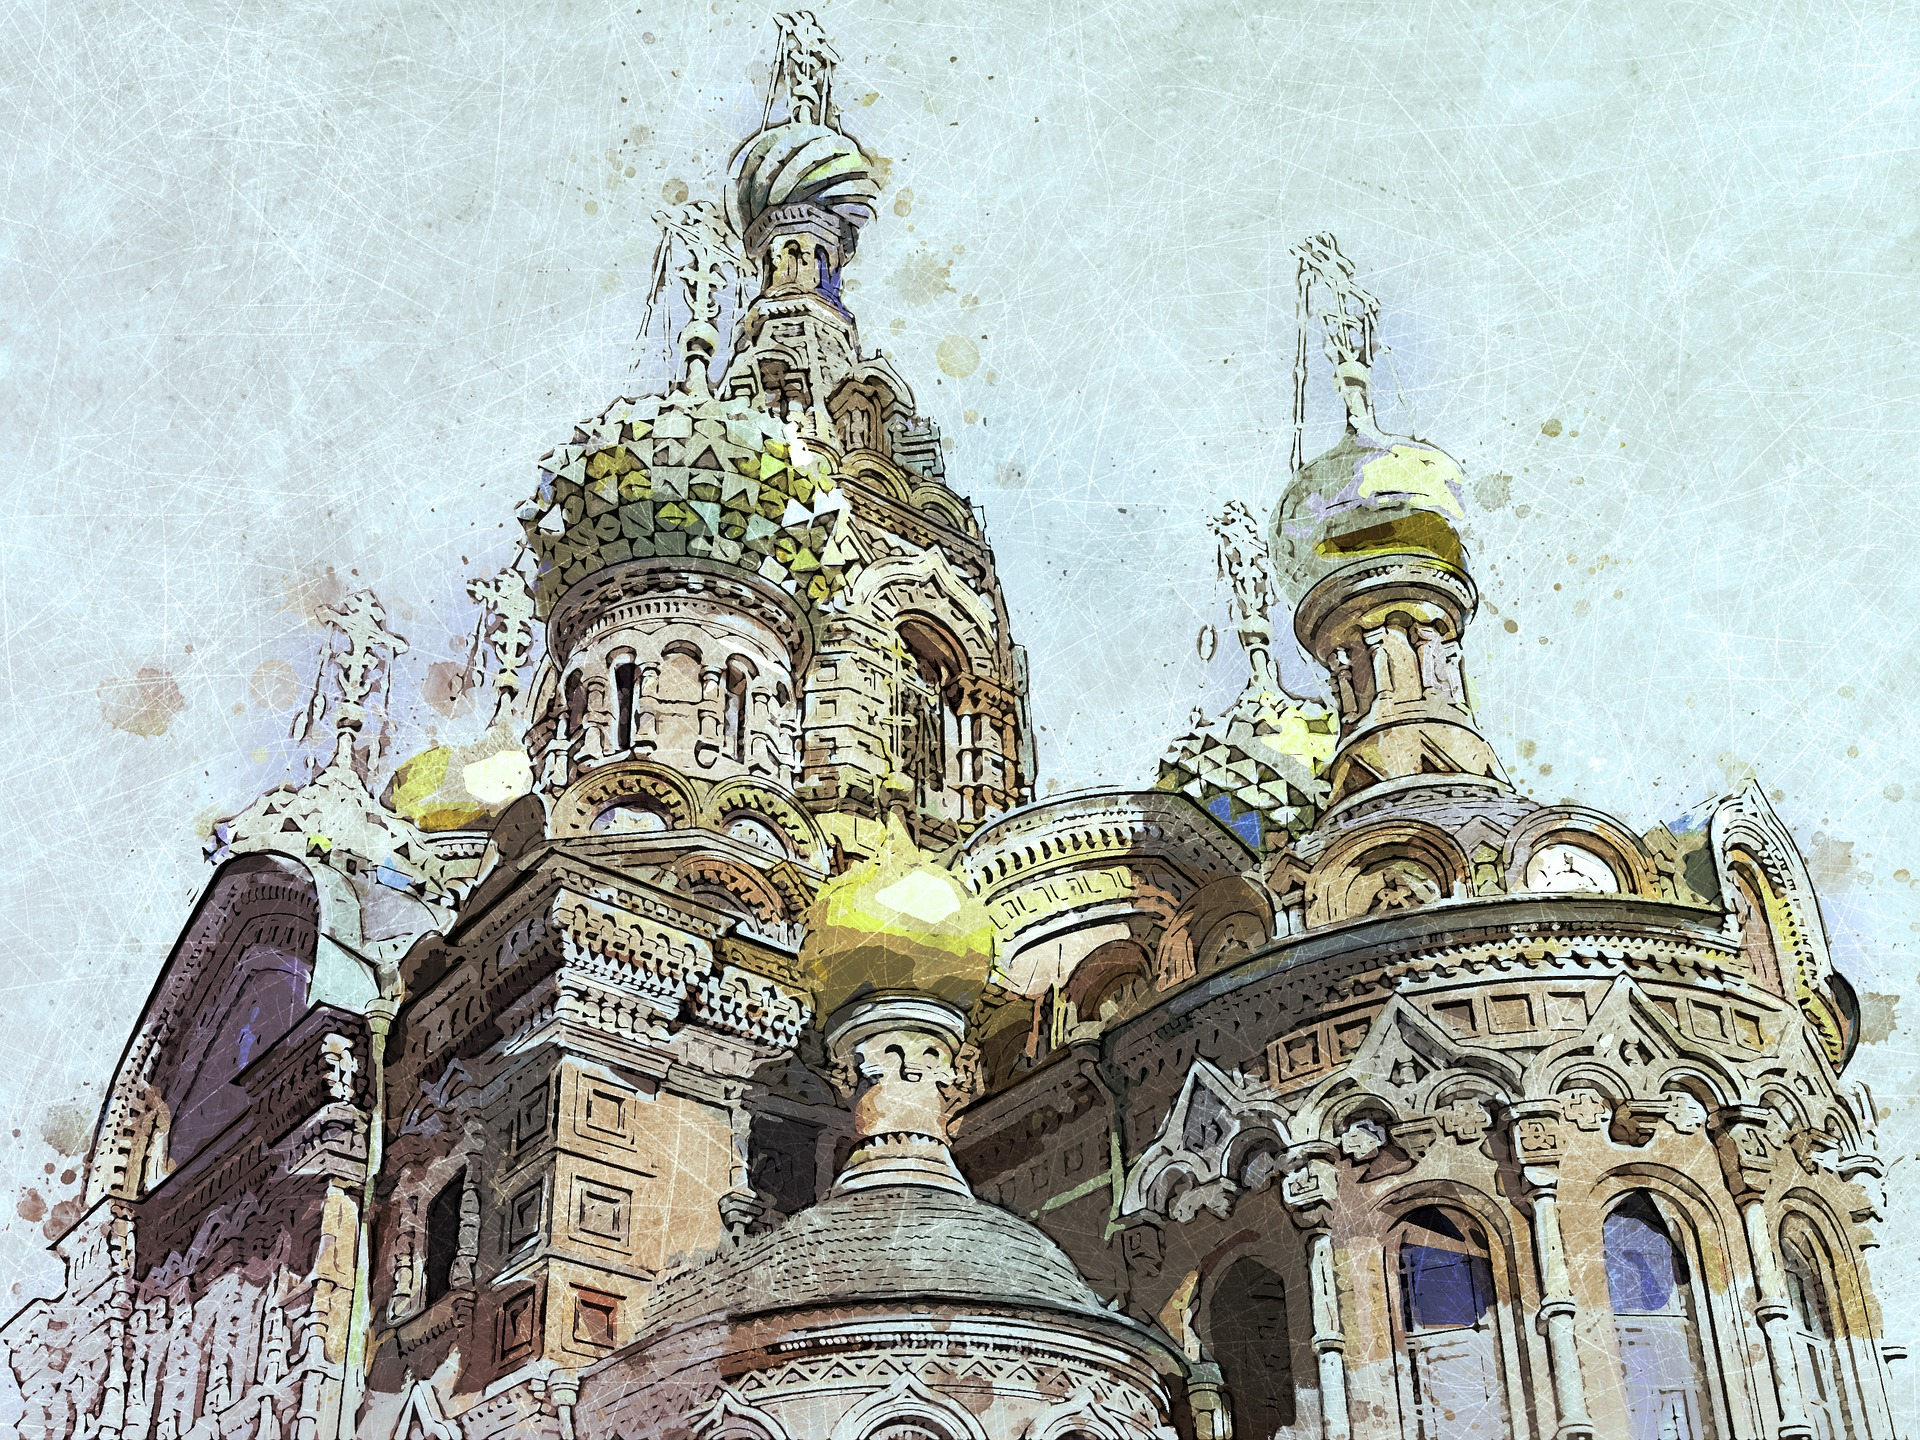 Image of St Petersburg cathedral